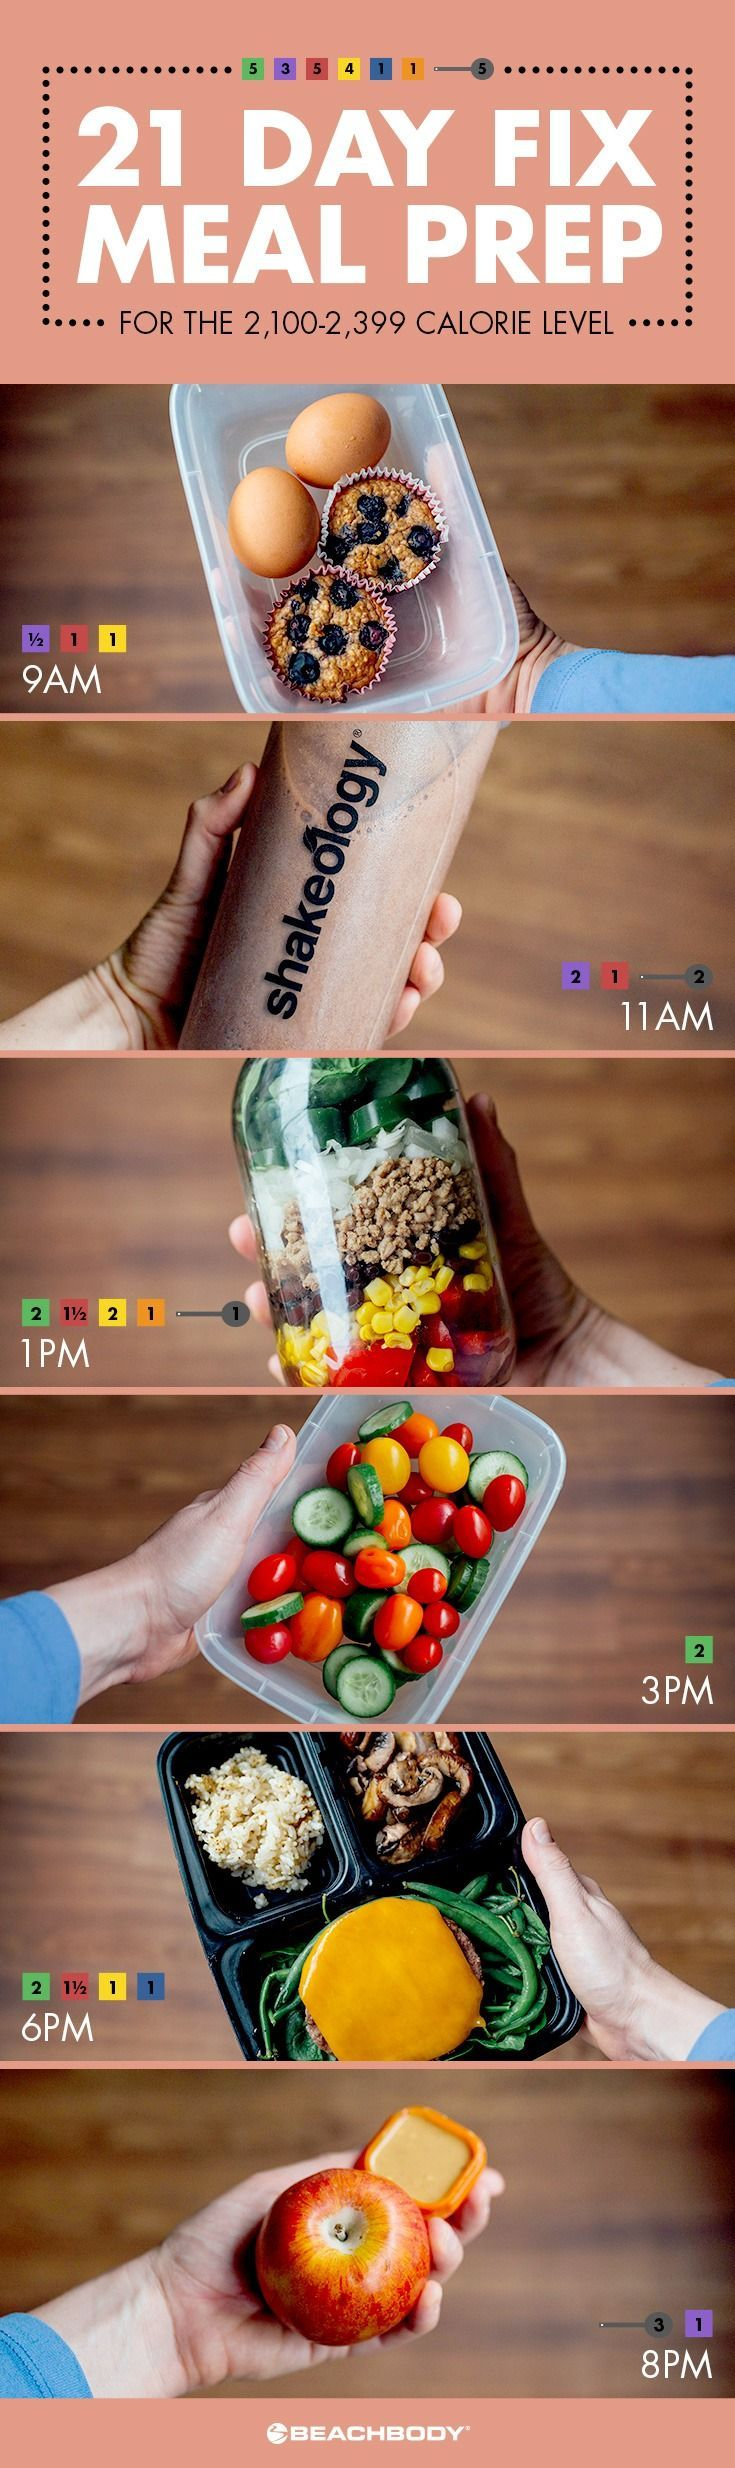 Quick and simple 21 Day Fix meal preps for every calorie level! // meal prep // meal planning // 21 day fix // 21dayfix // 21df // lunch // lunch combos // bento boxes // fresh food // healthy eating // healthy // clean eating // Beachbody // BeachbodyBlog.com